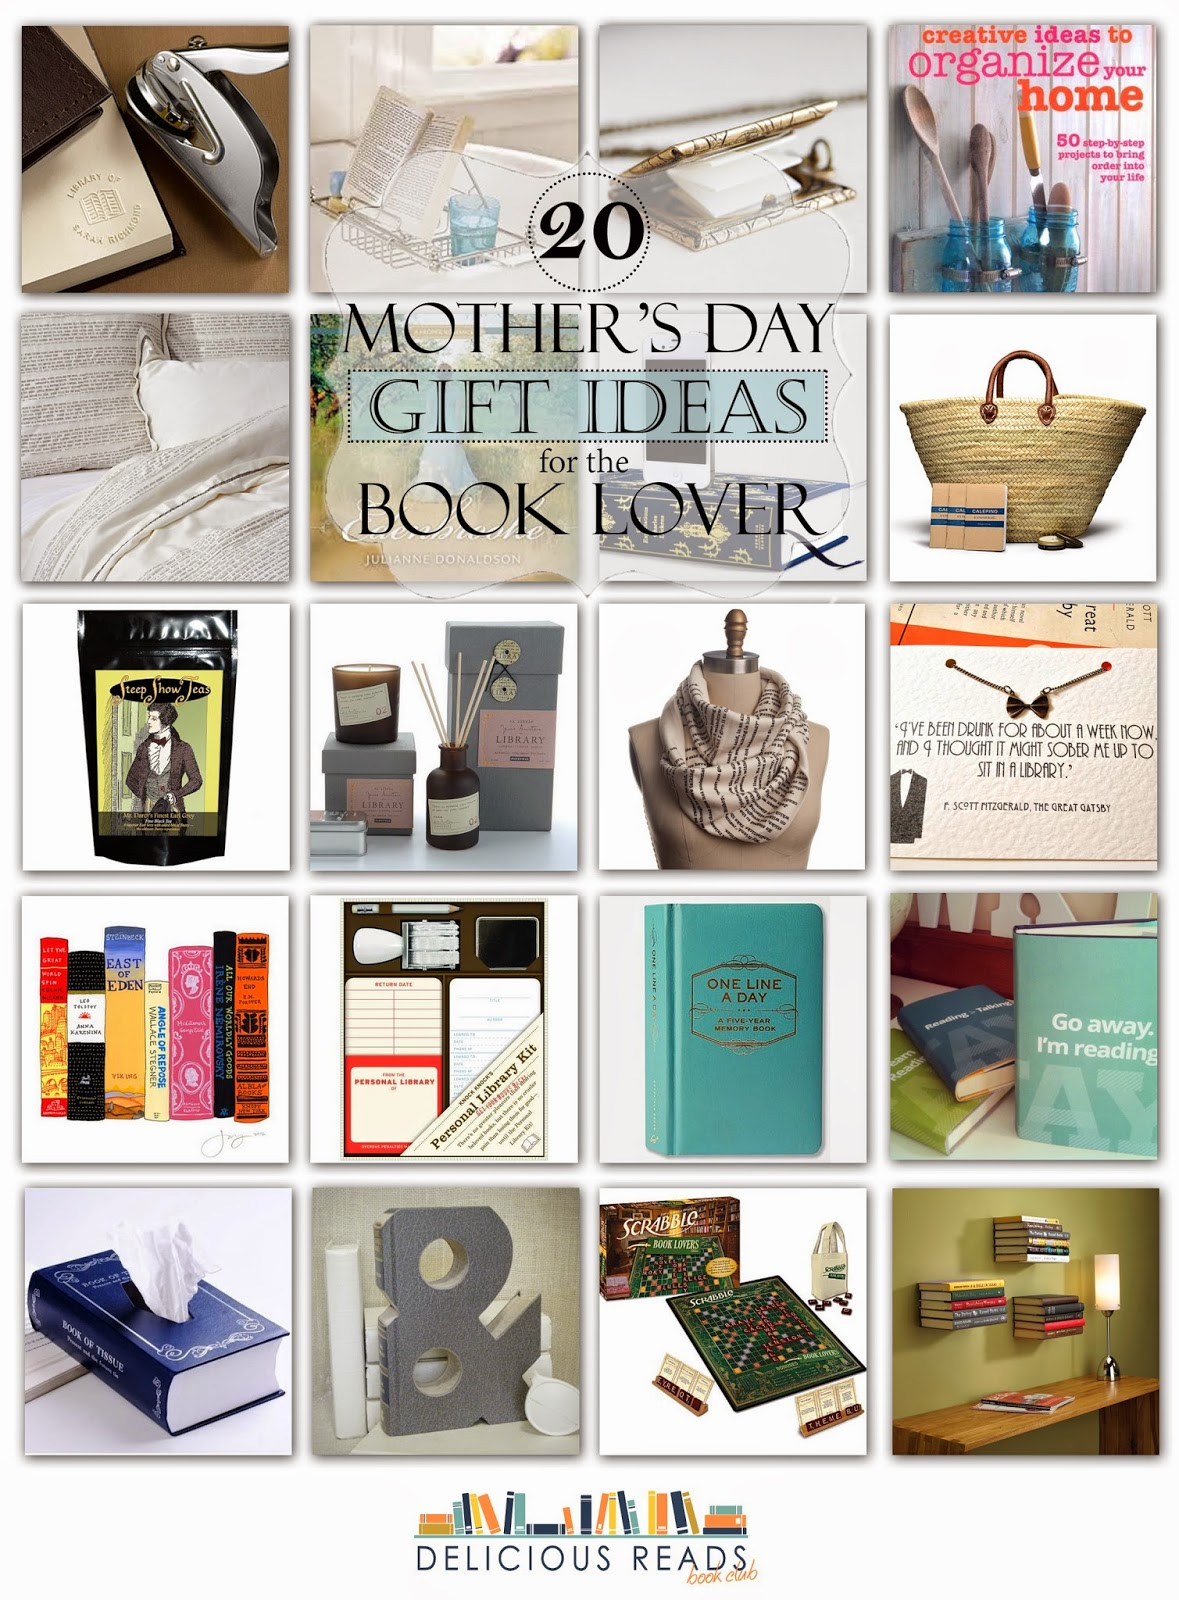 Book Lover Gift Delicious Reads 20 Mother 39s Day Gift Ideas For The Book Lover